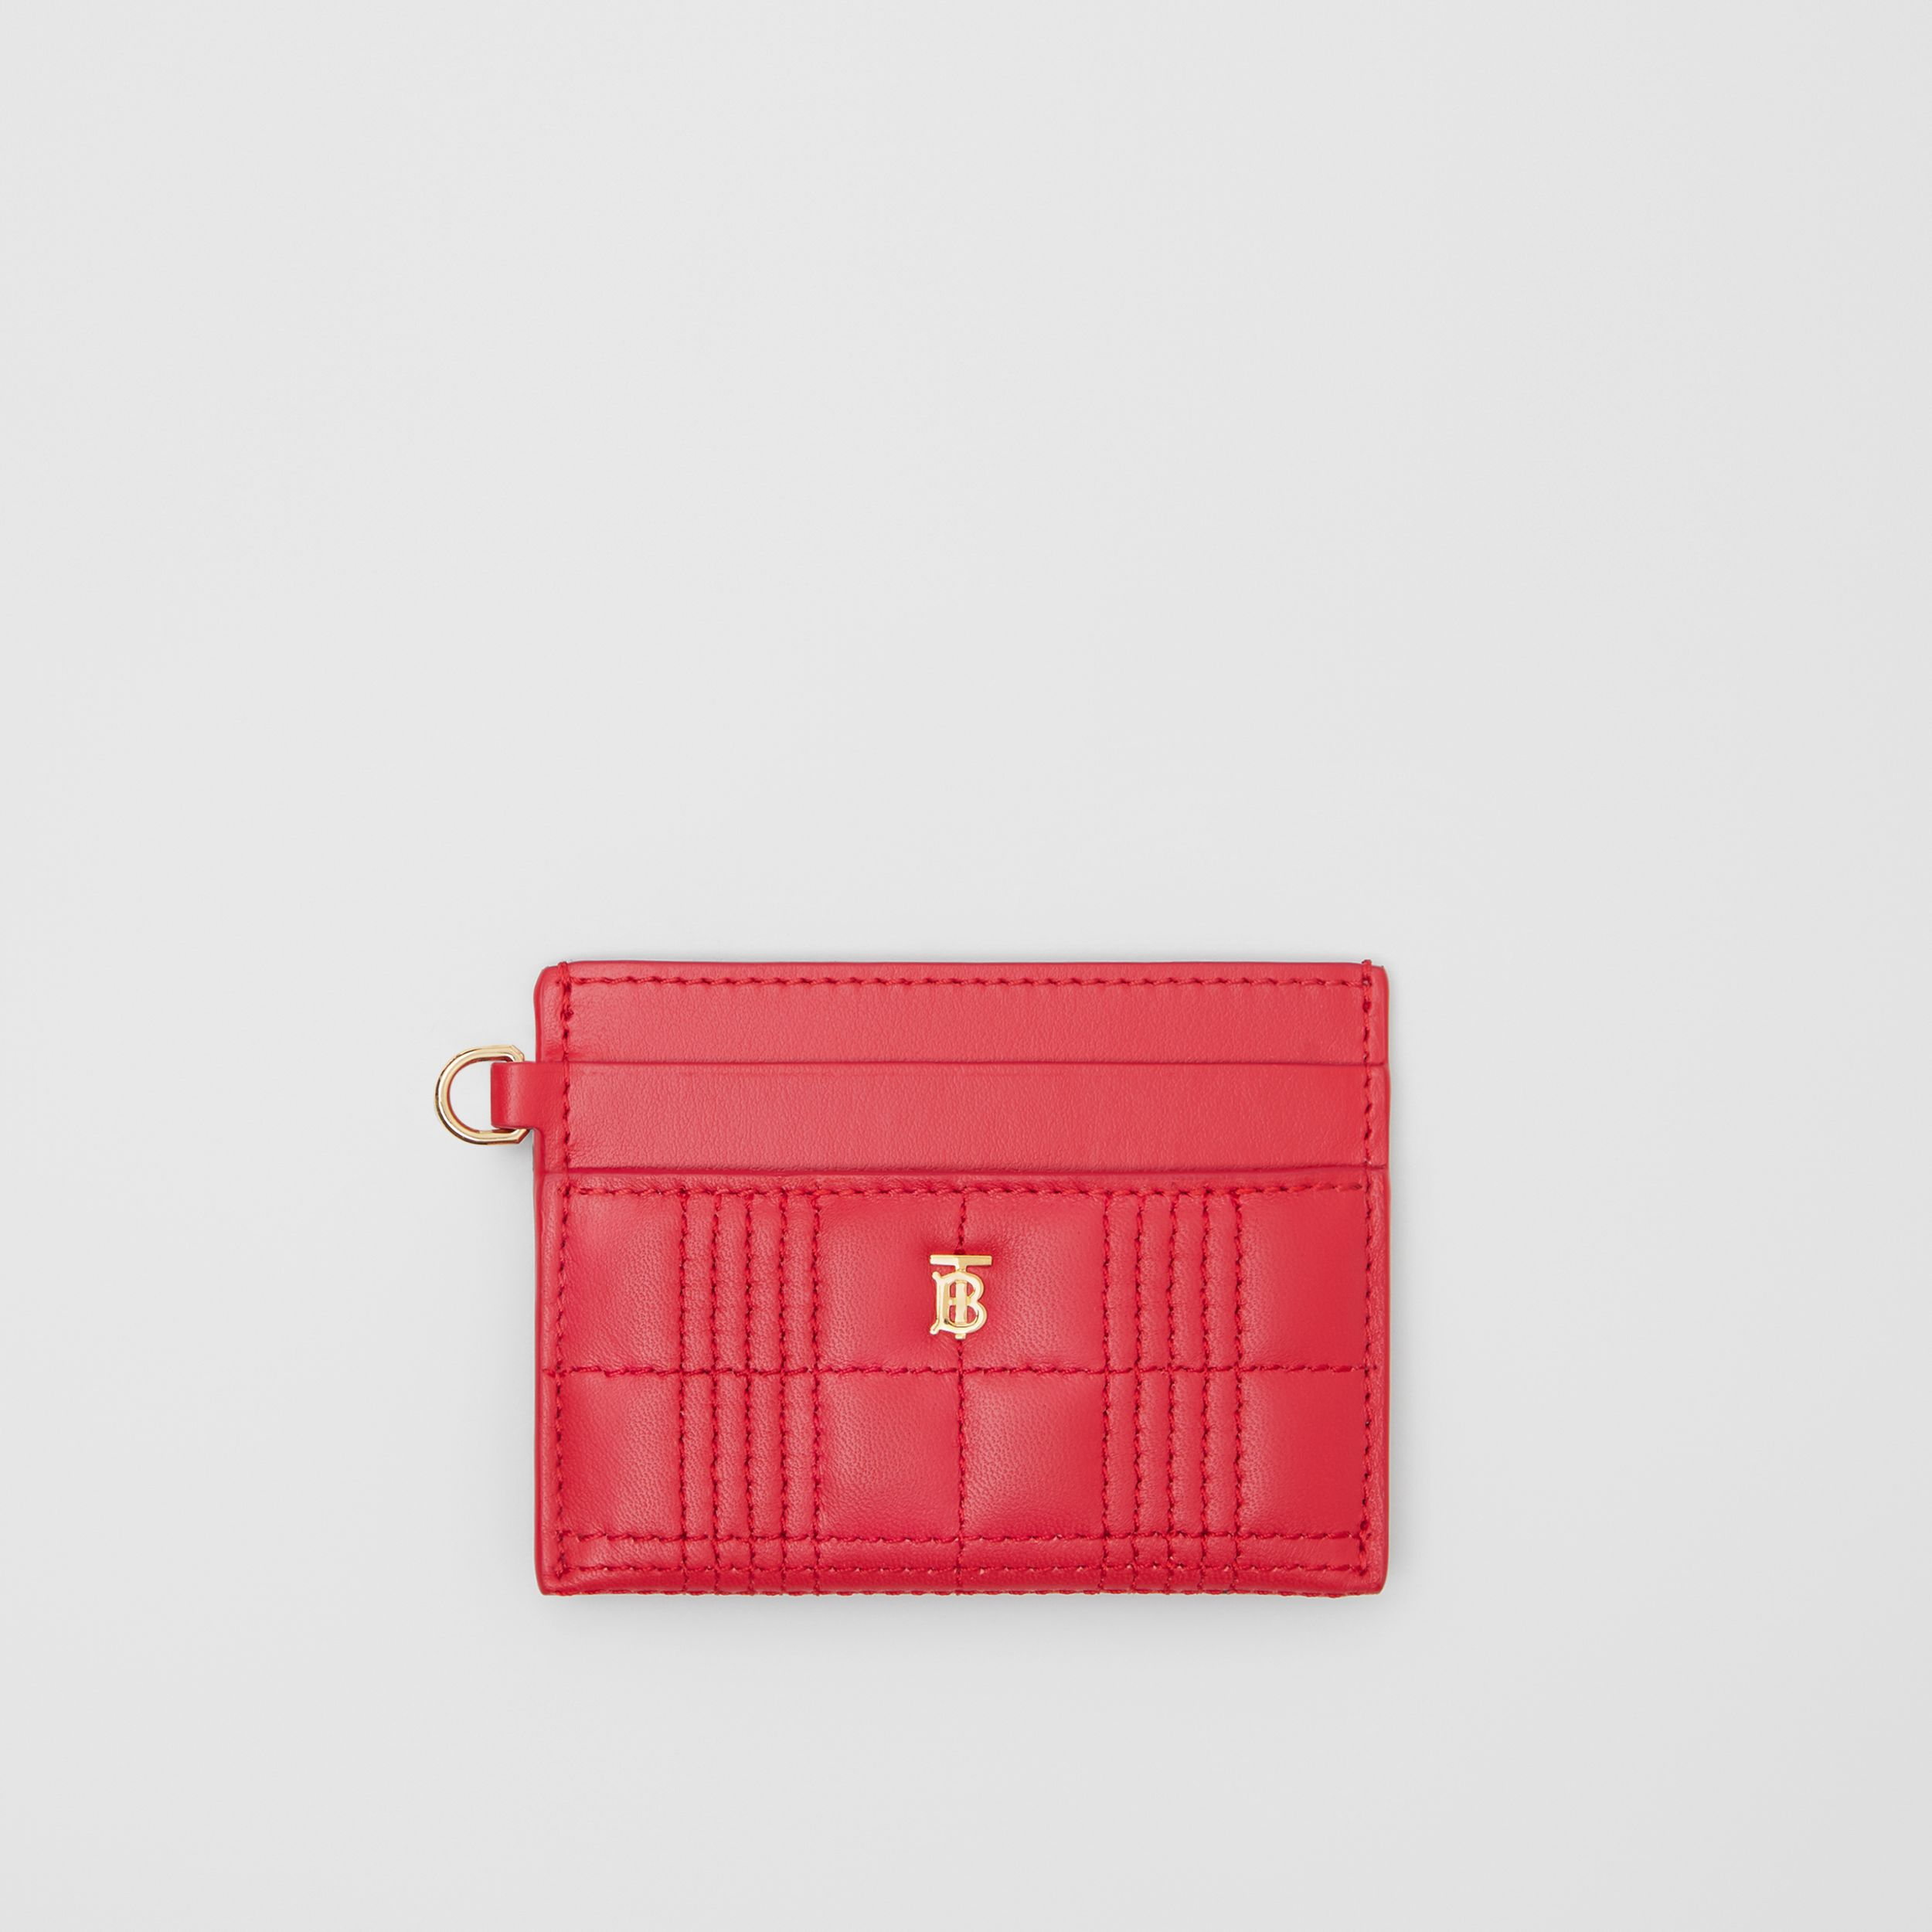 Monogram Motif Quilted Lambskin Card Case in Bright Red - Women | Burberry - 1